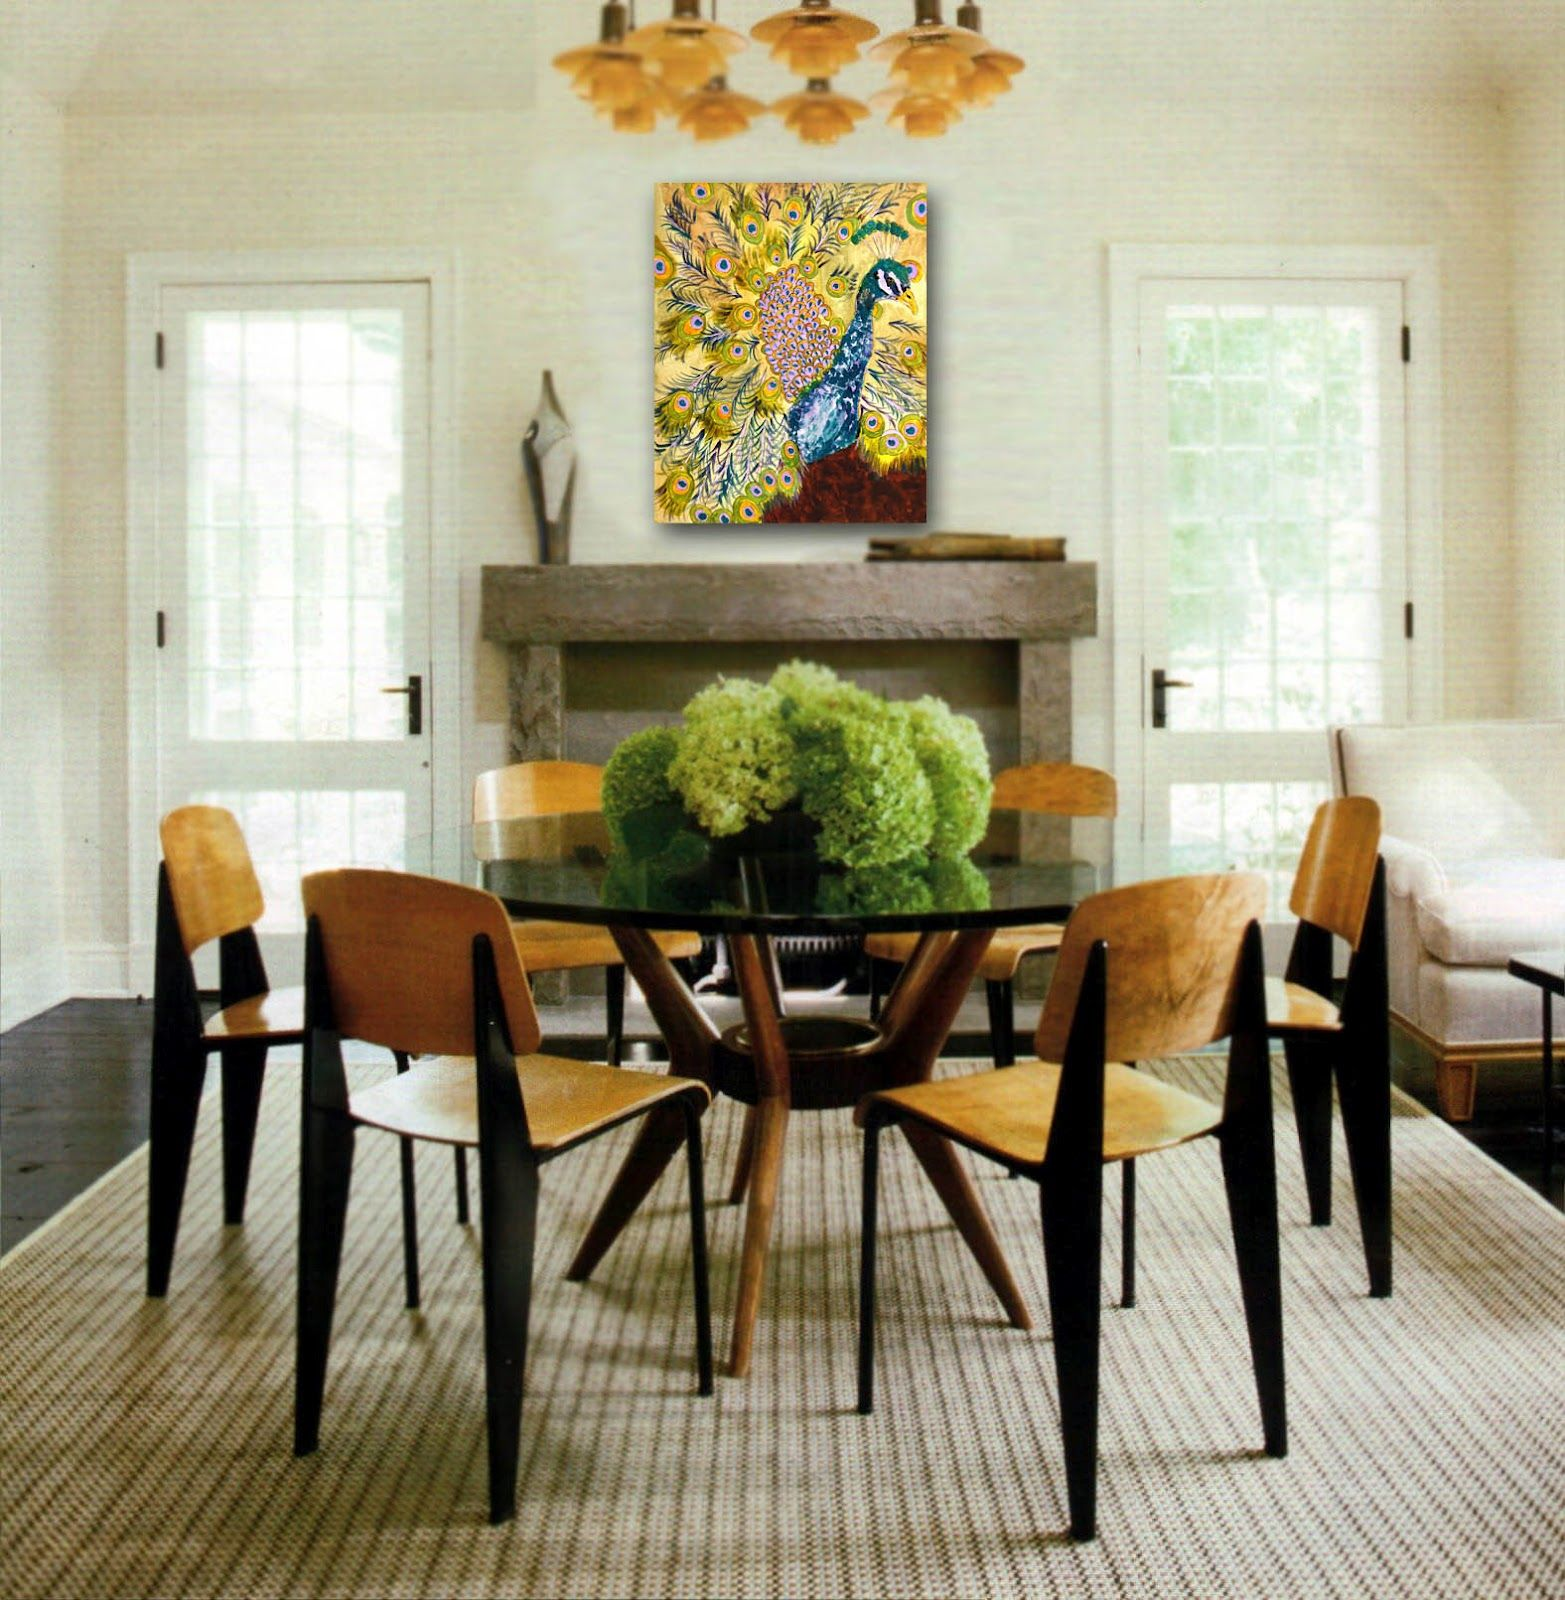 Pin By Amanda Kidder On Home Sweet Home Dining Room Table Centerpieces Dining Room Table Decor Dining Room Centerpiece